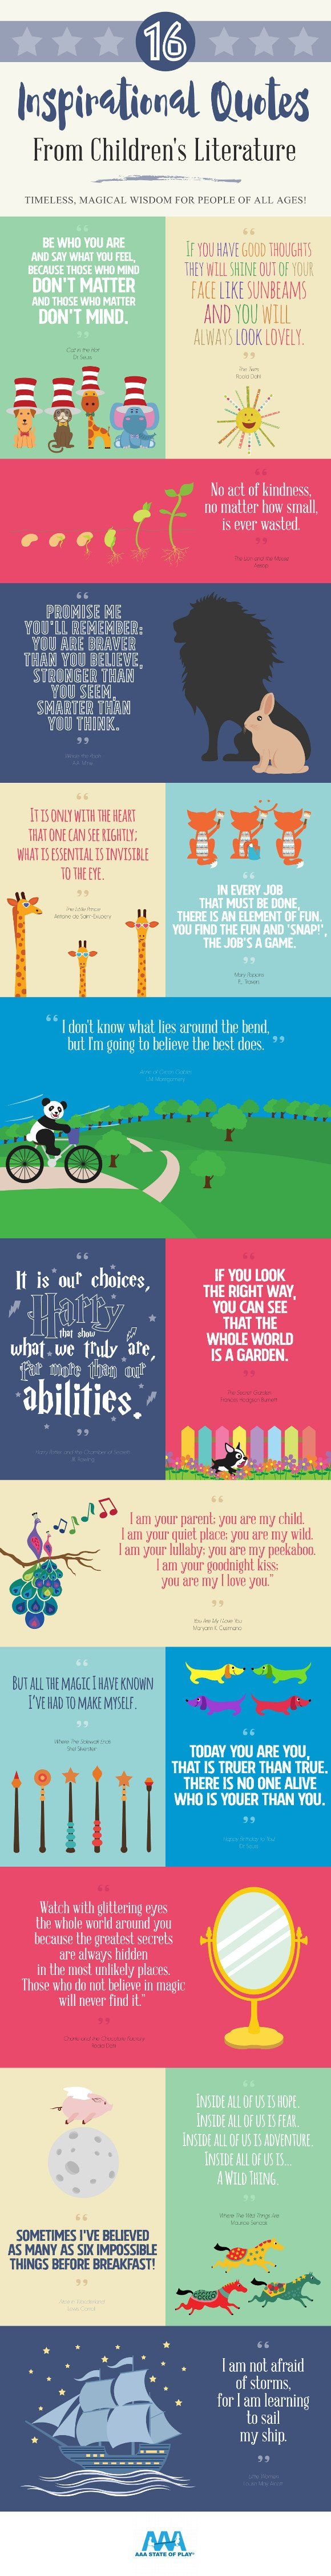 Infographic: 16 Quotes from Children's Literature